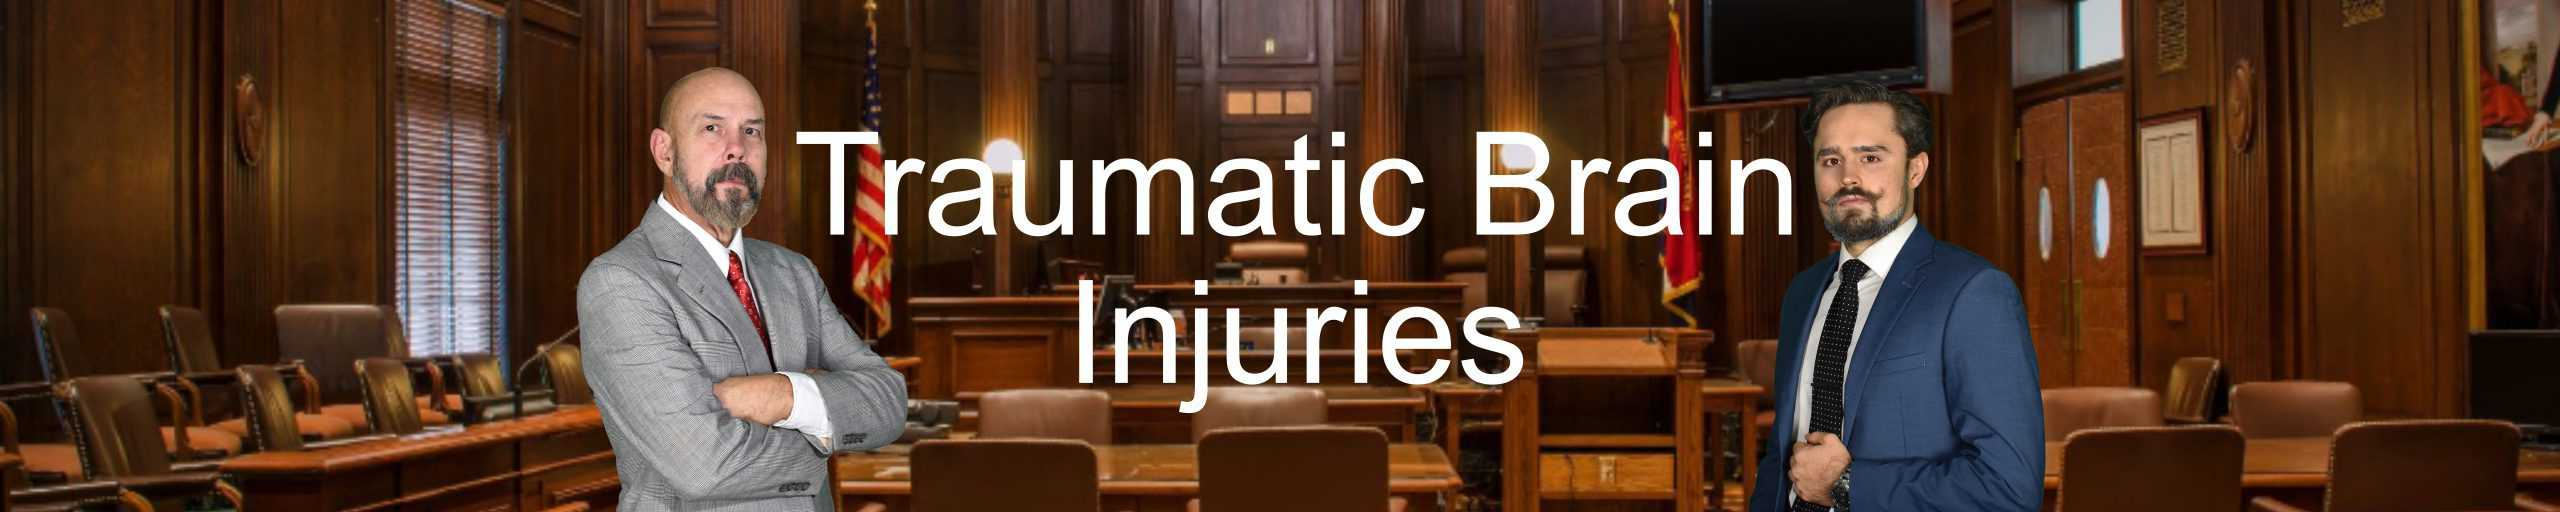 Traumatic-Brain-Injury-Accidents-Personal-Injury-Attorney-Lawyer-Hurt-Broken-Rear-End-Money-Settlement-Hospital-ER-Damage-Insurance-Company-Concussion-Whiplash-Post-Syndrome-Confused